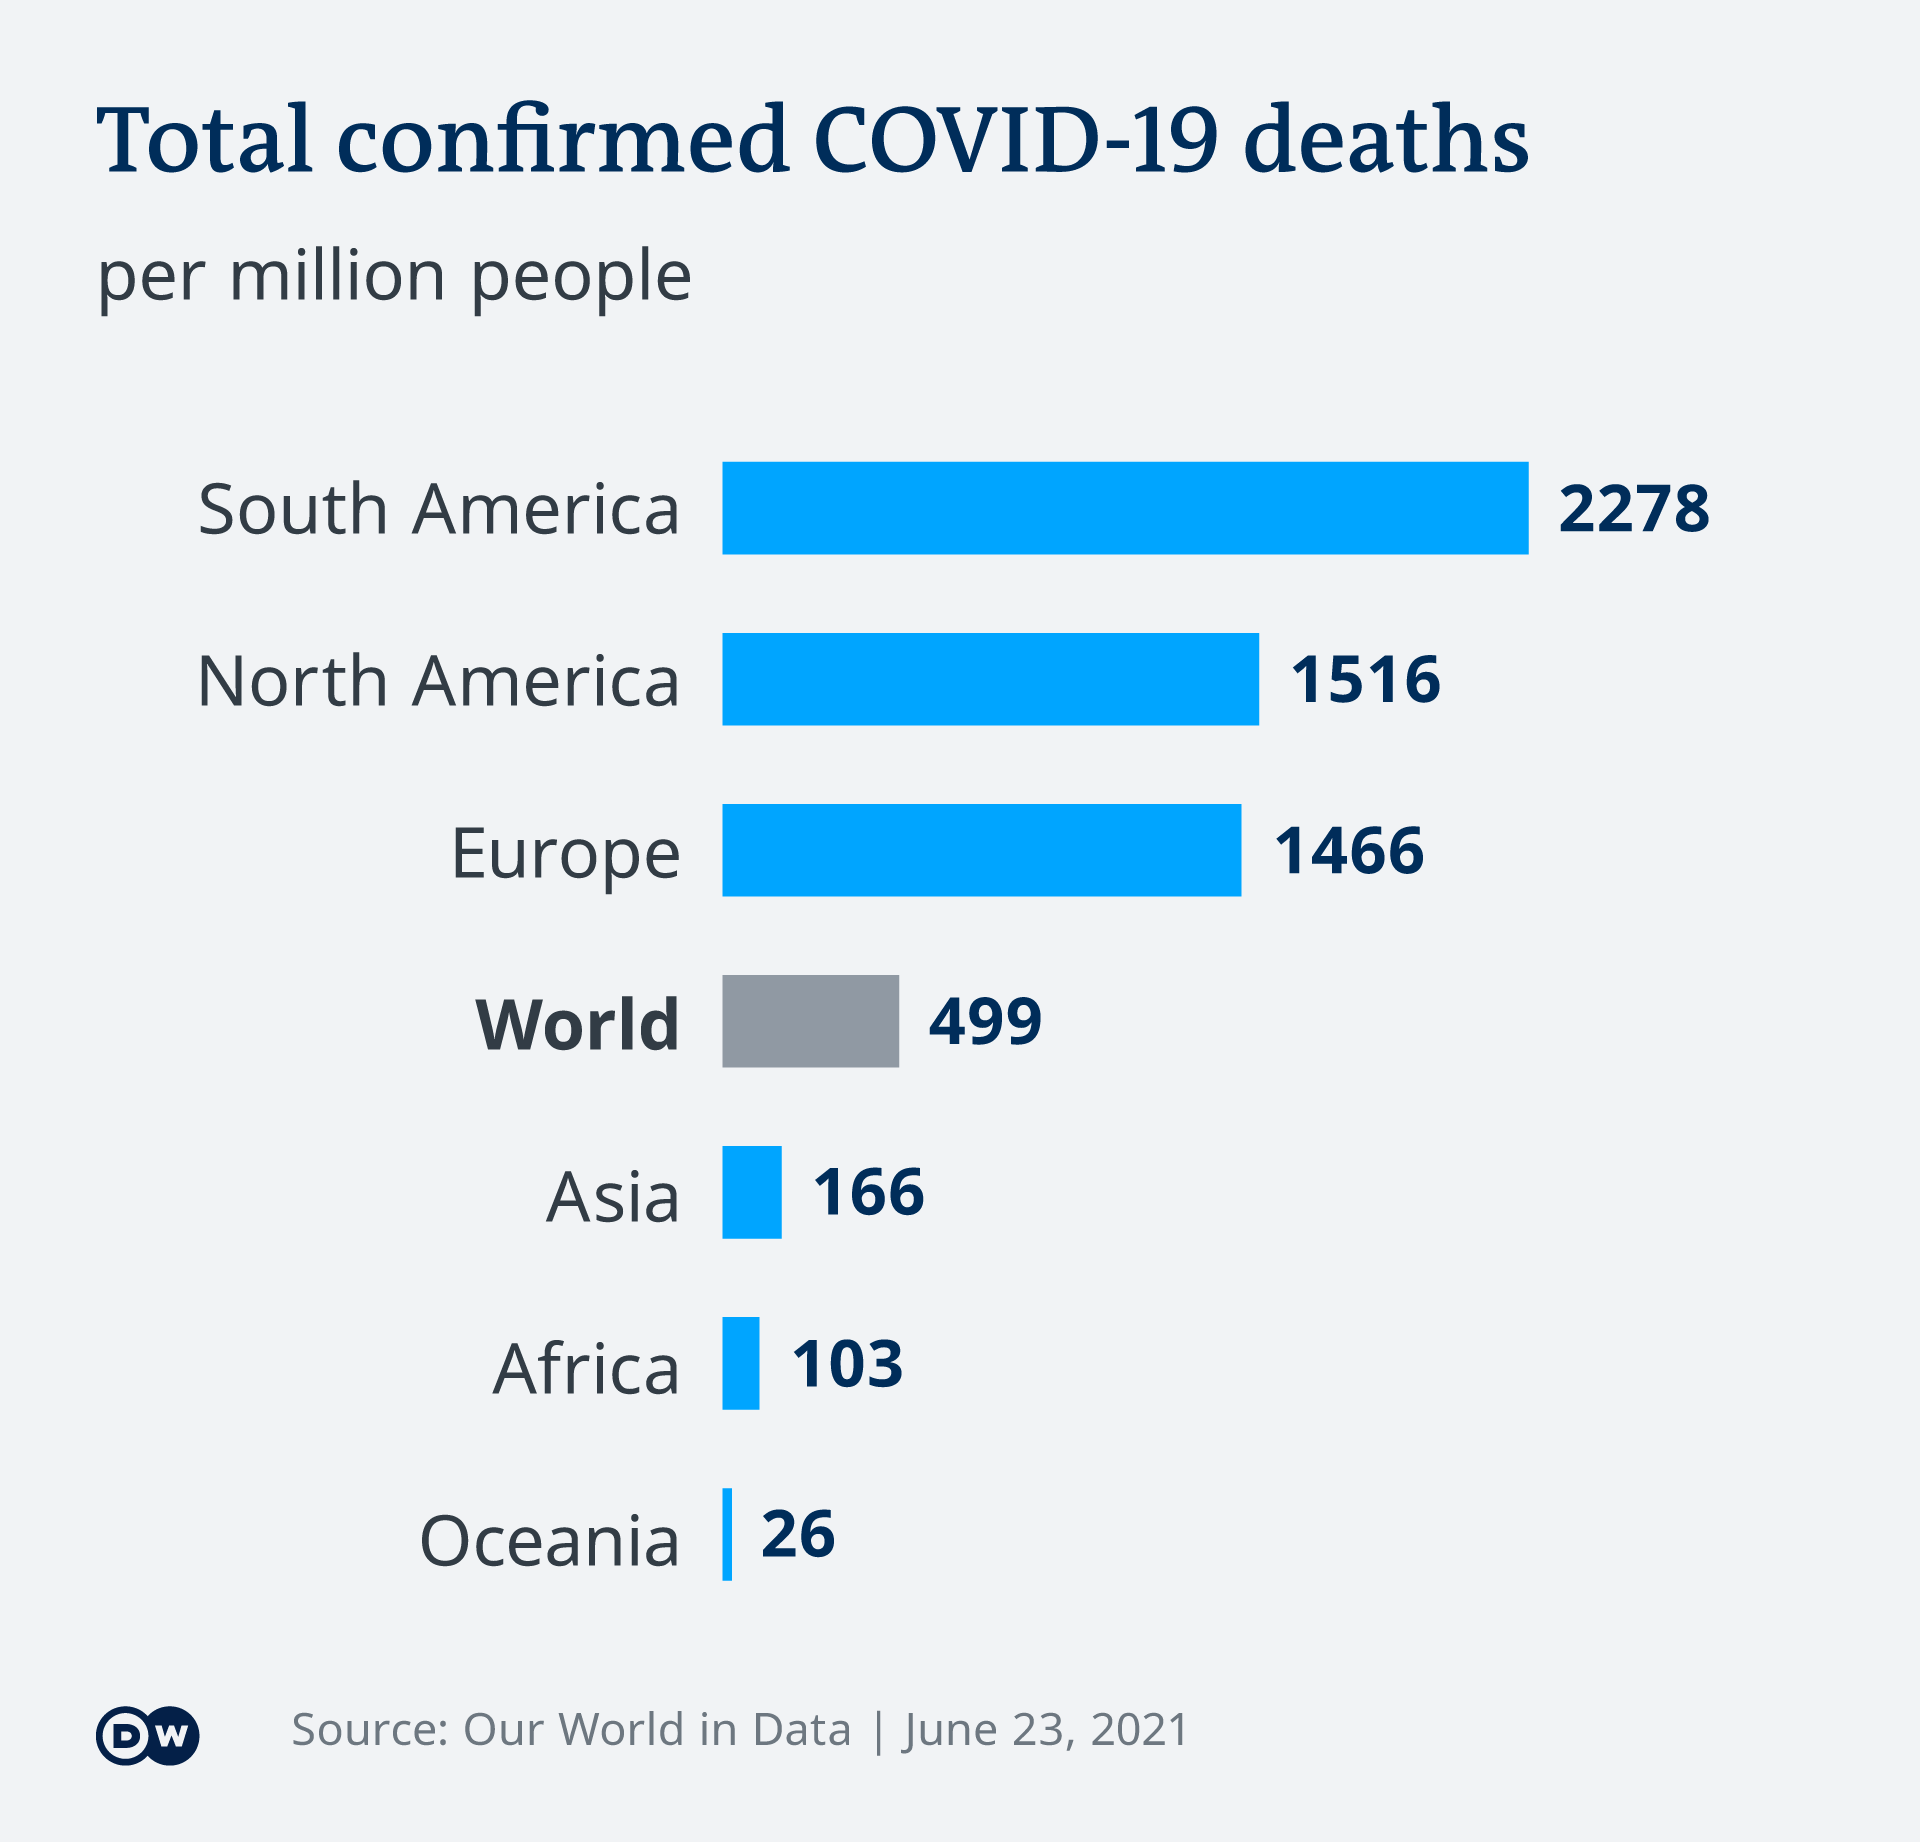 An infographic showing COVID-19 deaths per million population across regions